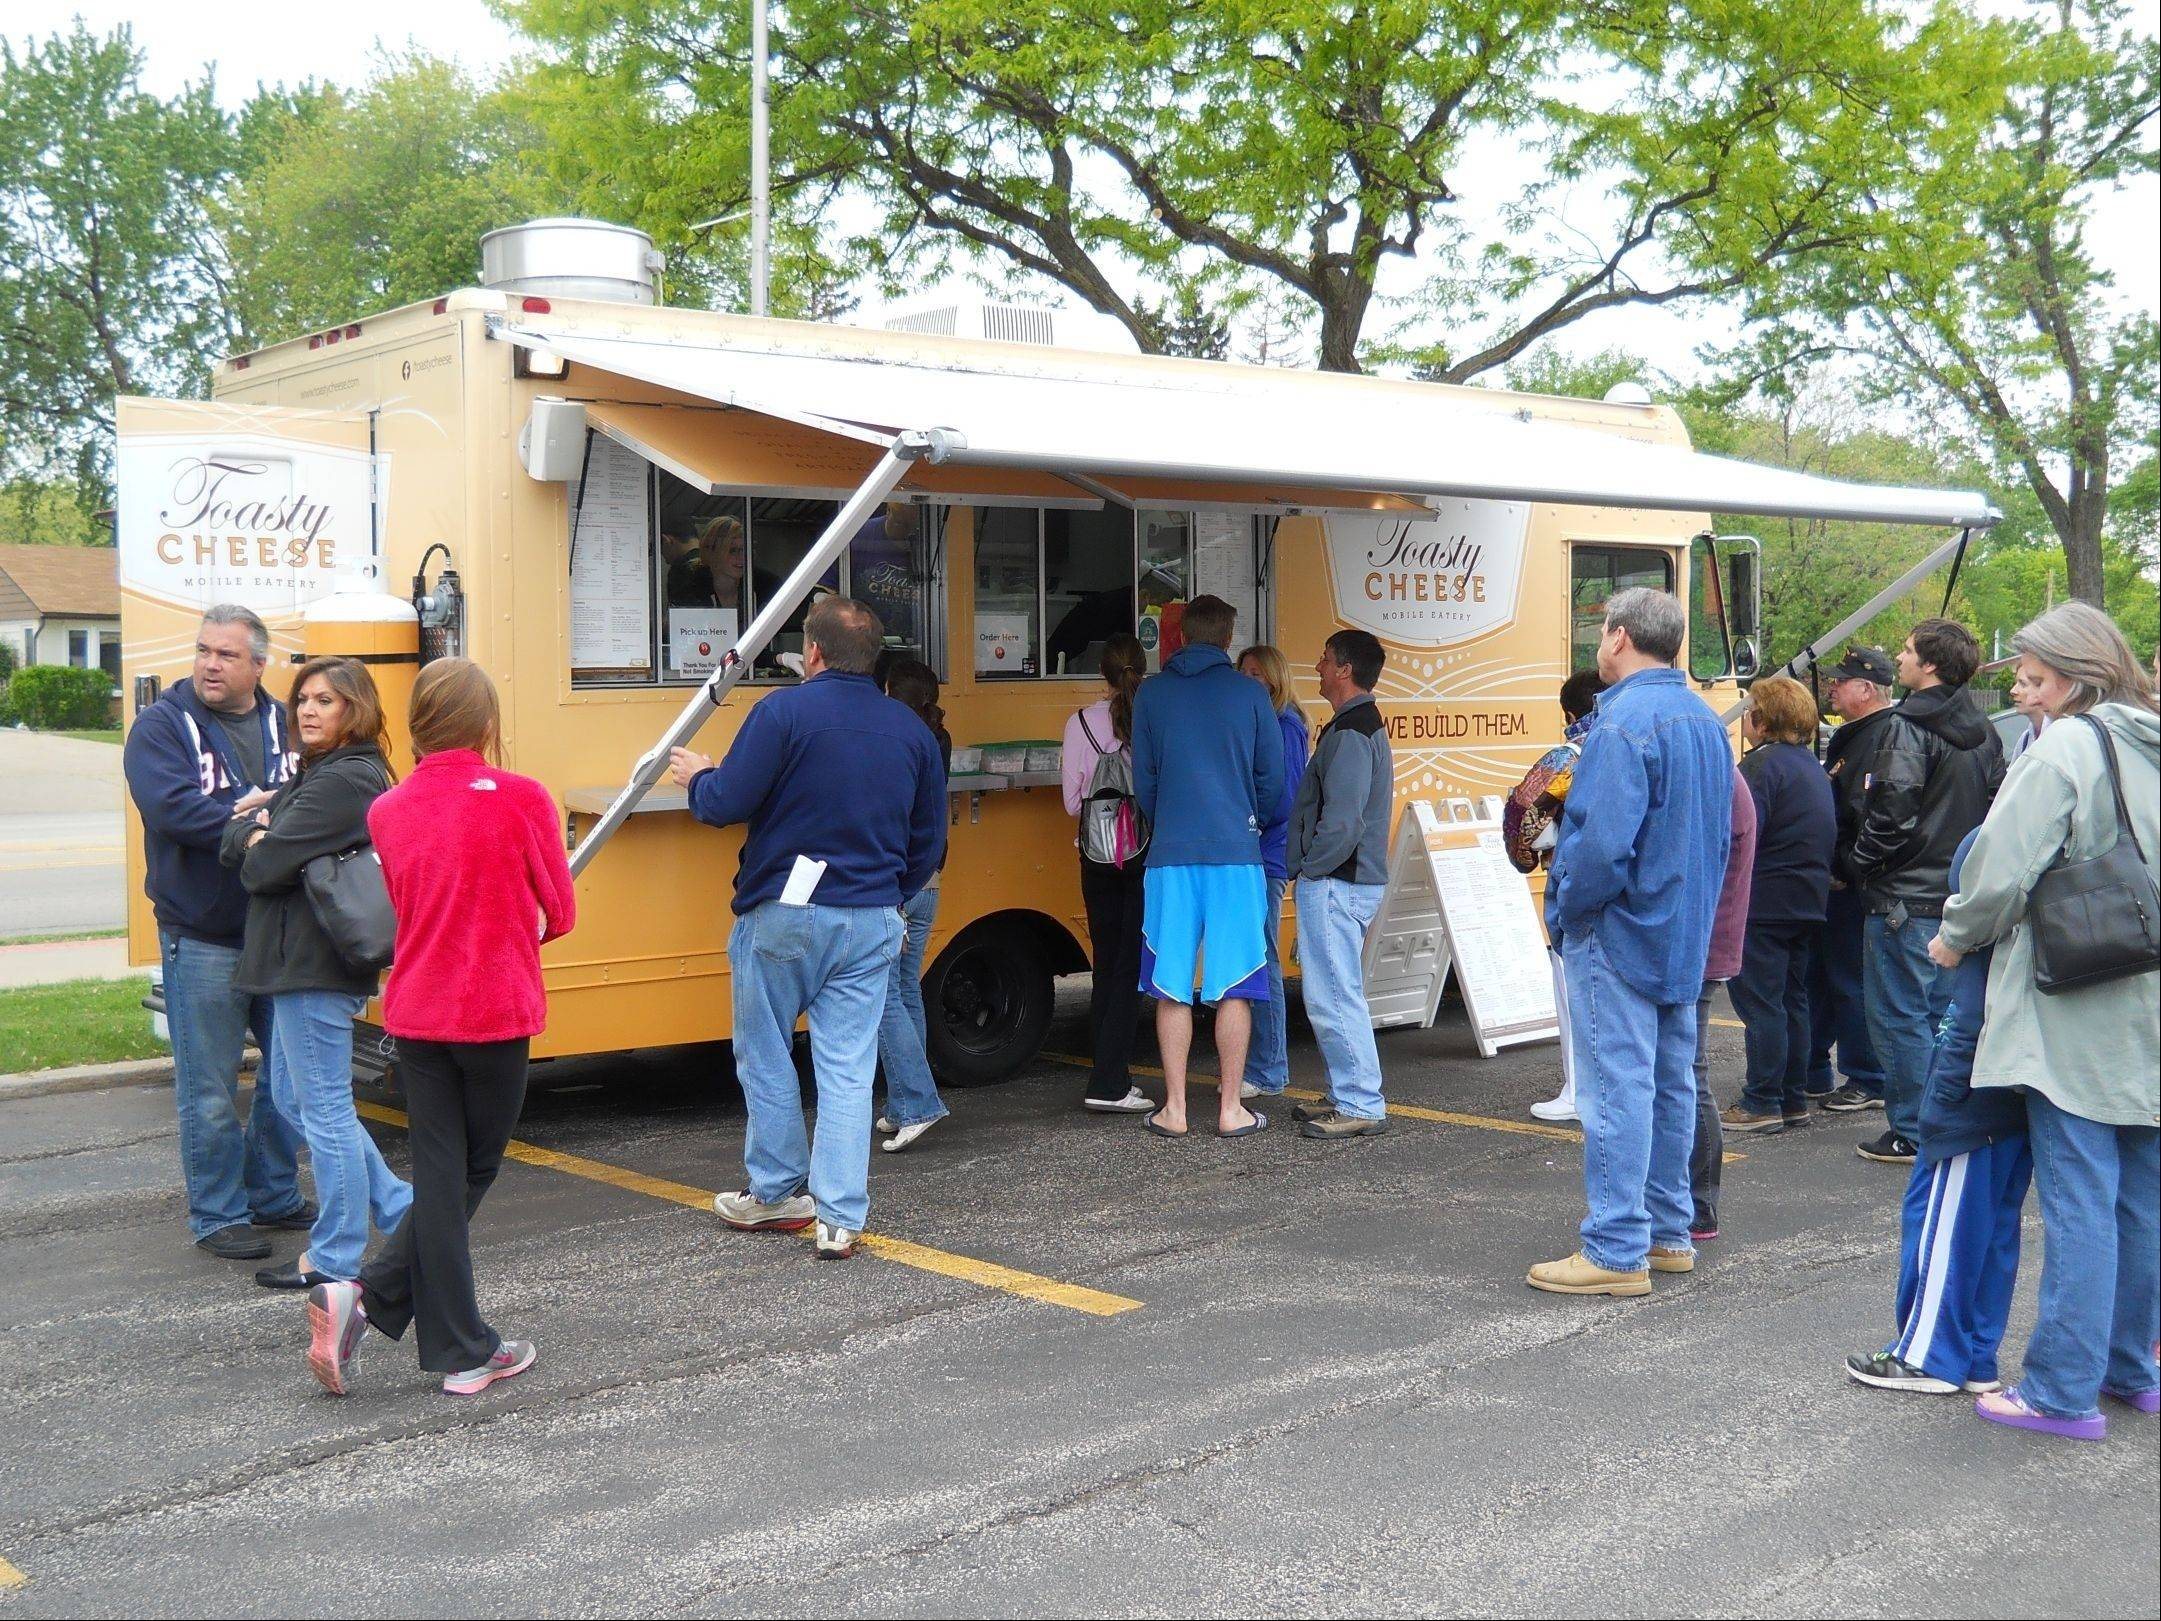 Toasty Cheese is one of the food trucks that will roll into Schaumburg Boomers Stadium Oct. 26.